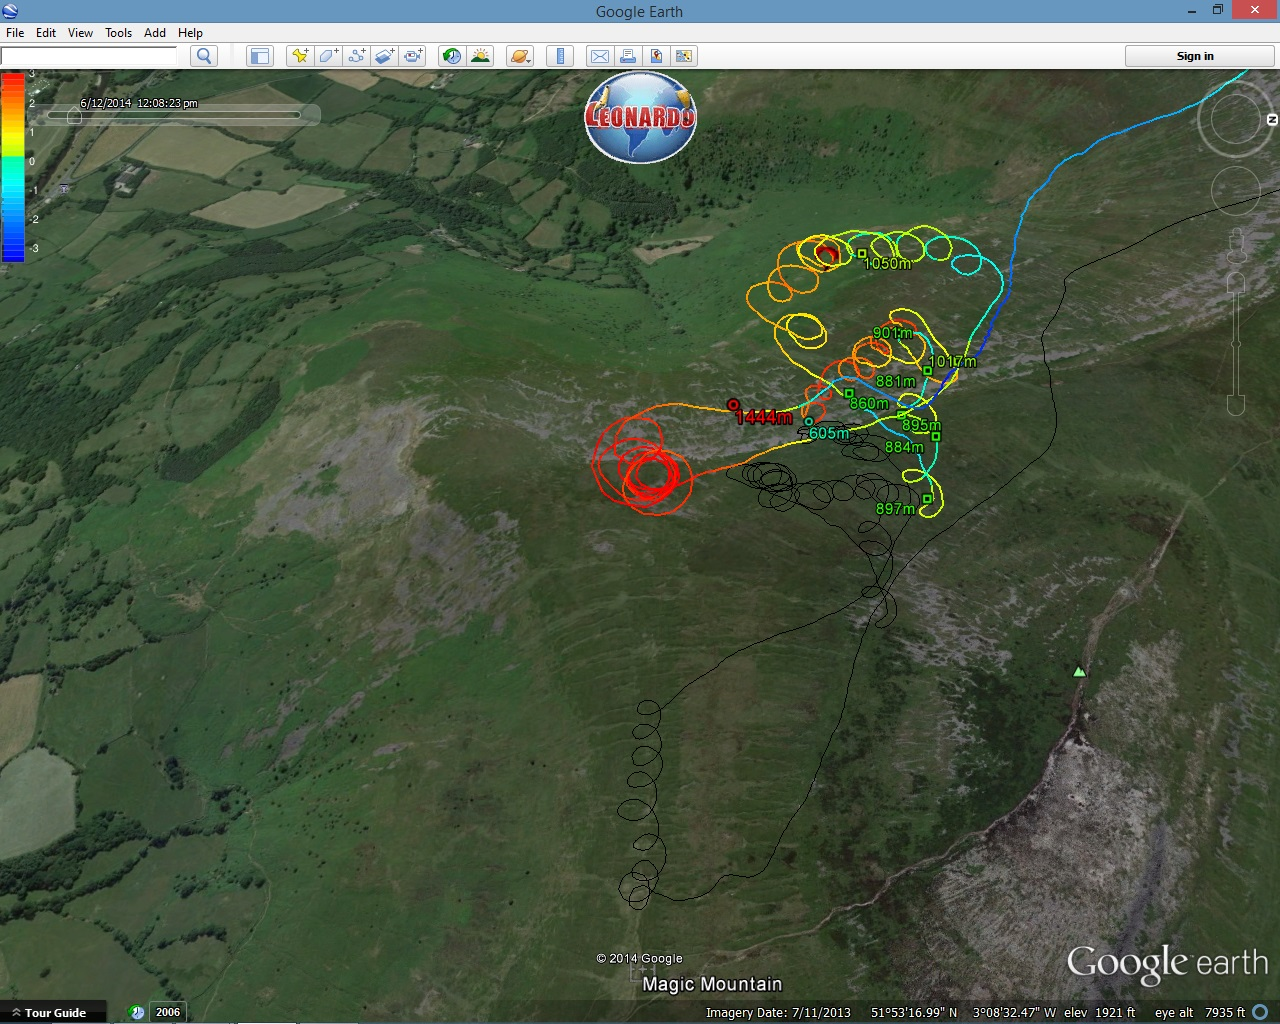 Google Earth paragliding tracklog in detail